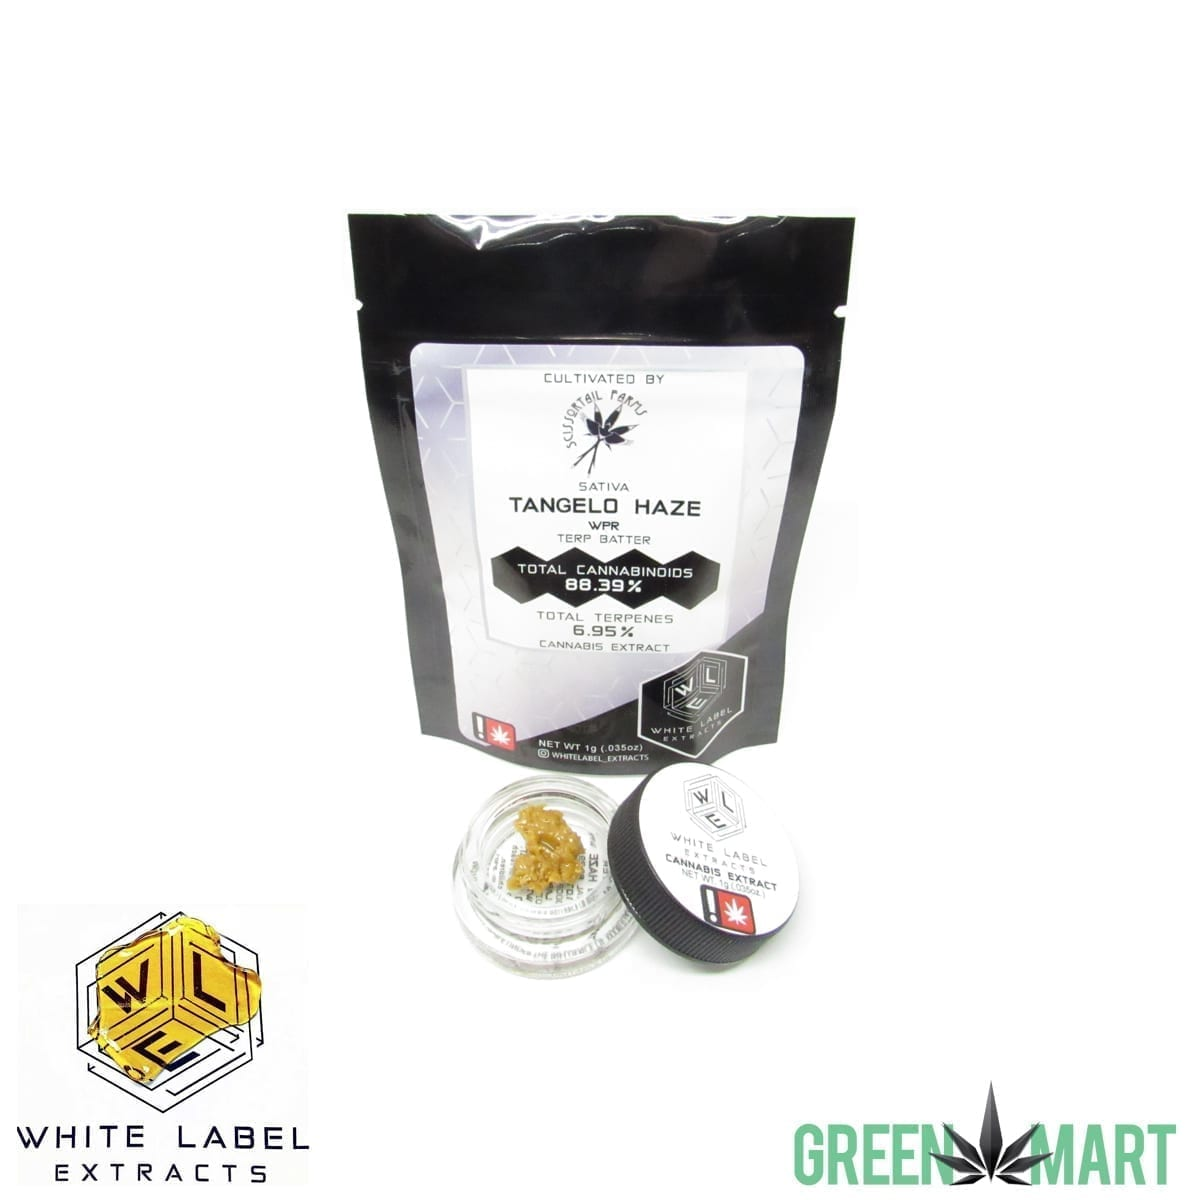 White Label Extracts - Tangelo Haze Terp Batter